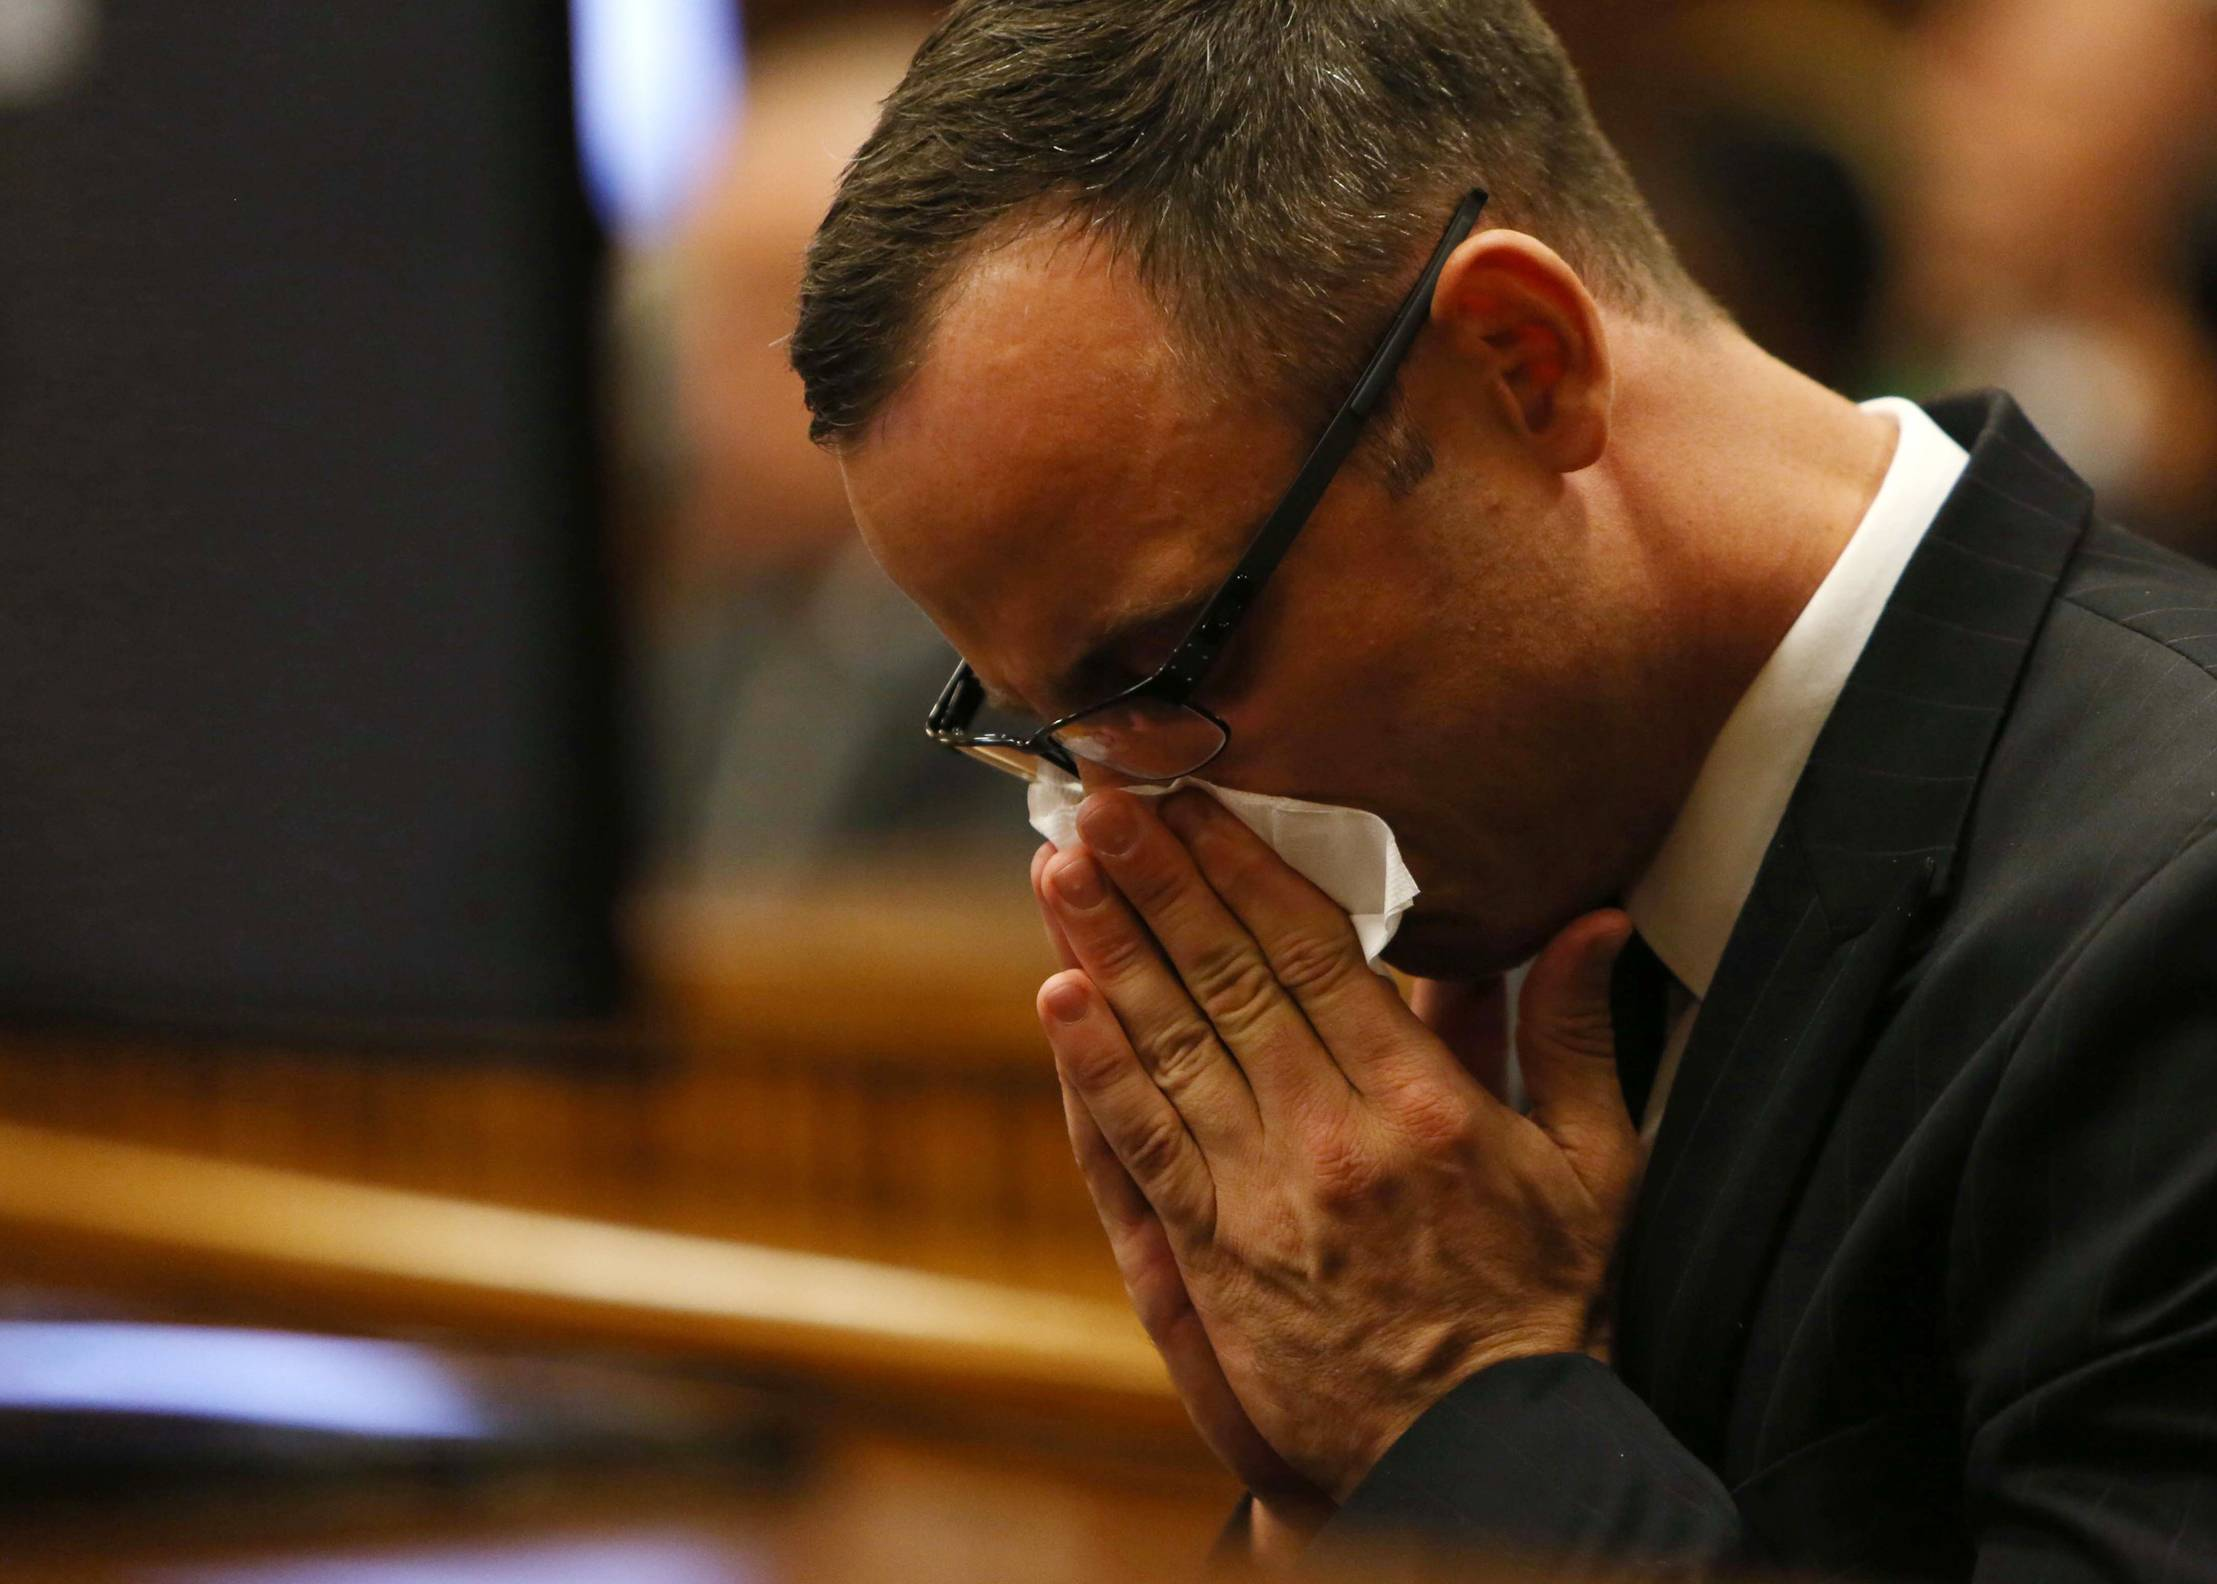 Oscar Pistorius reacts in the dock while listening to mobile phone evidence on exchanges of text messages between him as his girlfriend in court in Pretoria, South Africa, Tuesday. Pistorius is charged with the Valentines Day 2013 shooting death of his girlfriend Reeva Steenkamp.